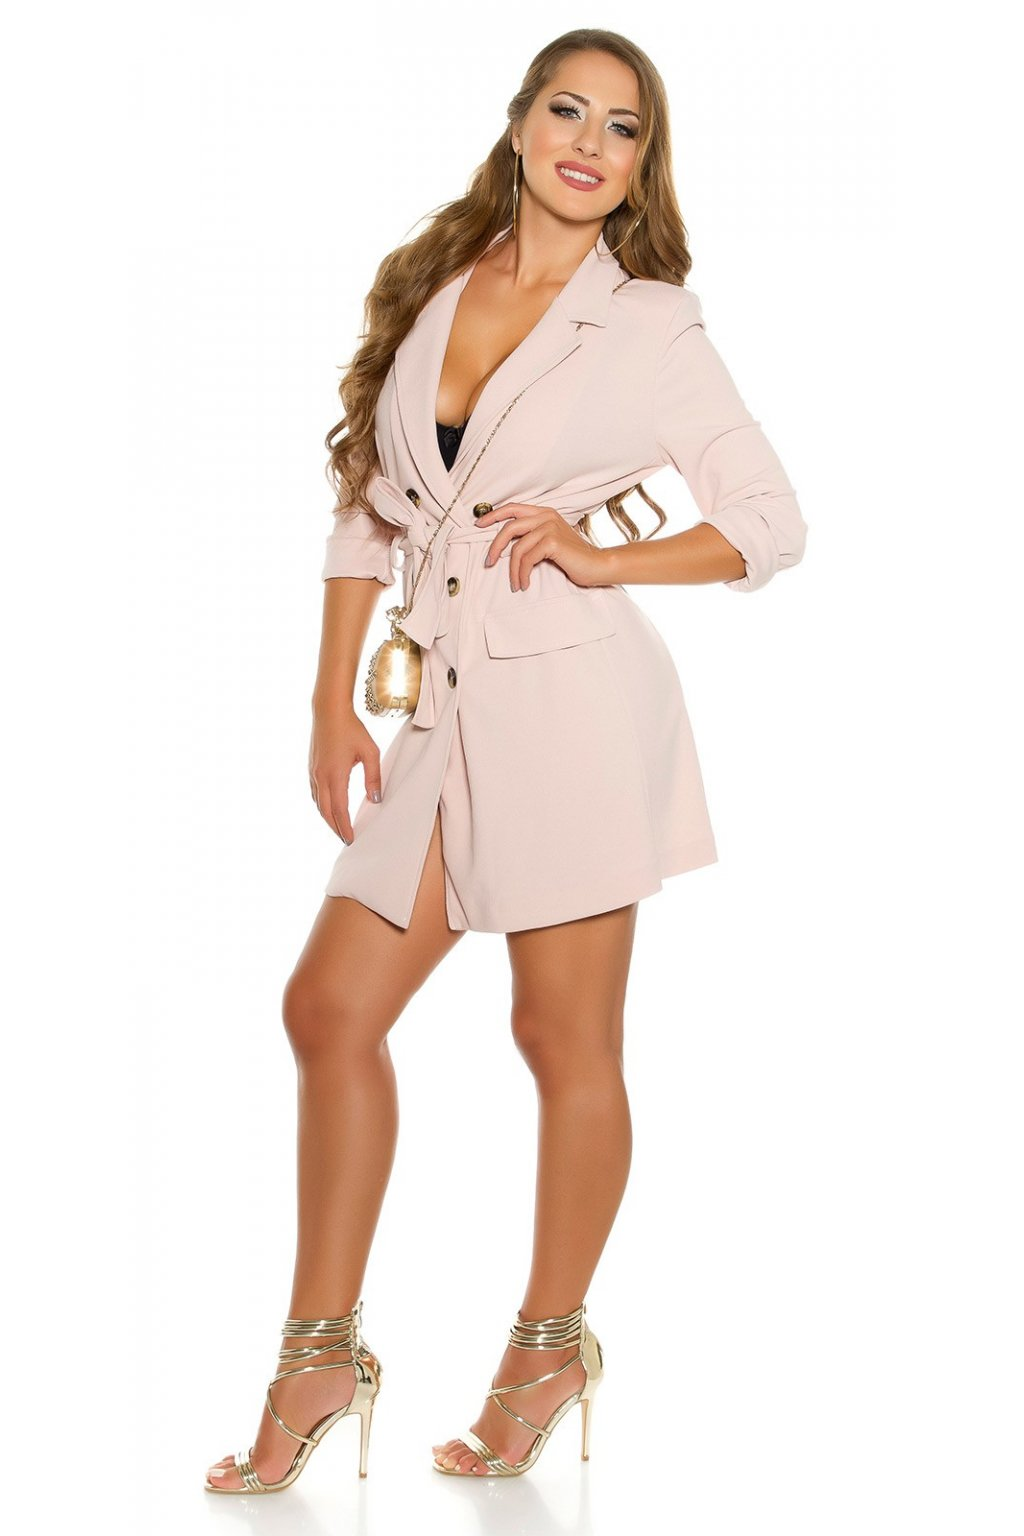 ... KouCla long sleeve mini dress buttoned belt Color ANTIQUEPINK Size  Einheitsgroesse 0000BL78891 ALTROSA 14. Nová kolekce košilových šatů ... 4f2df097bf